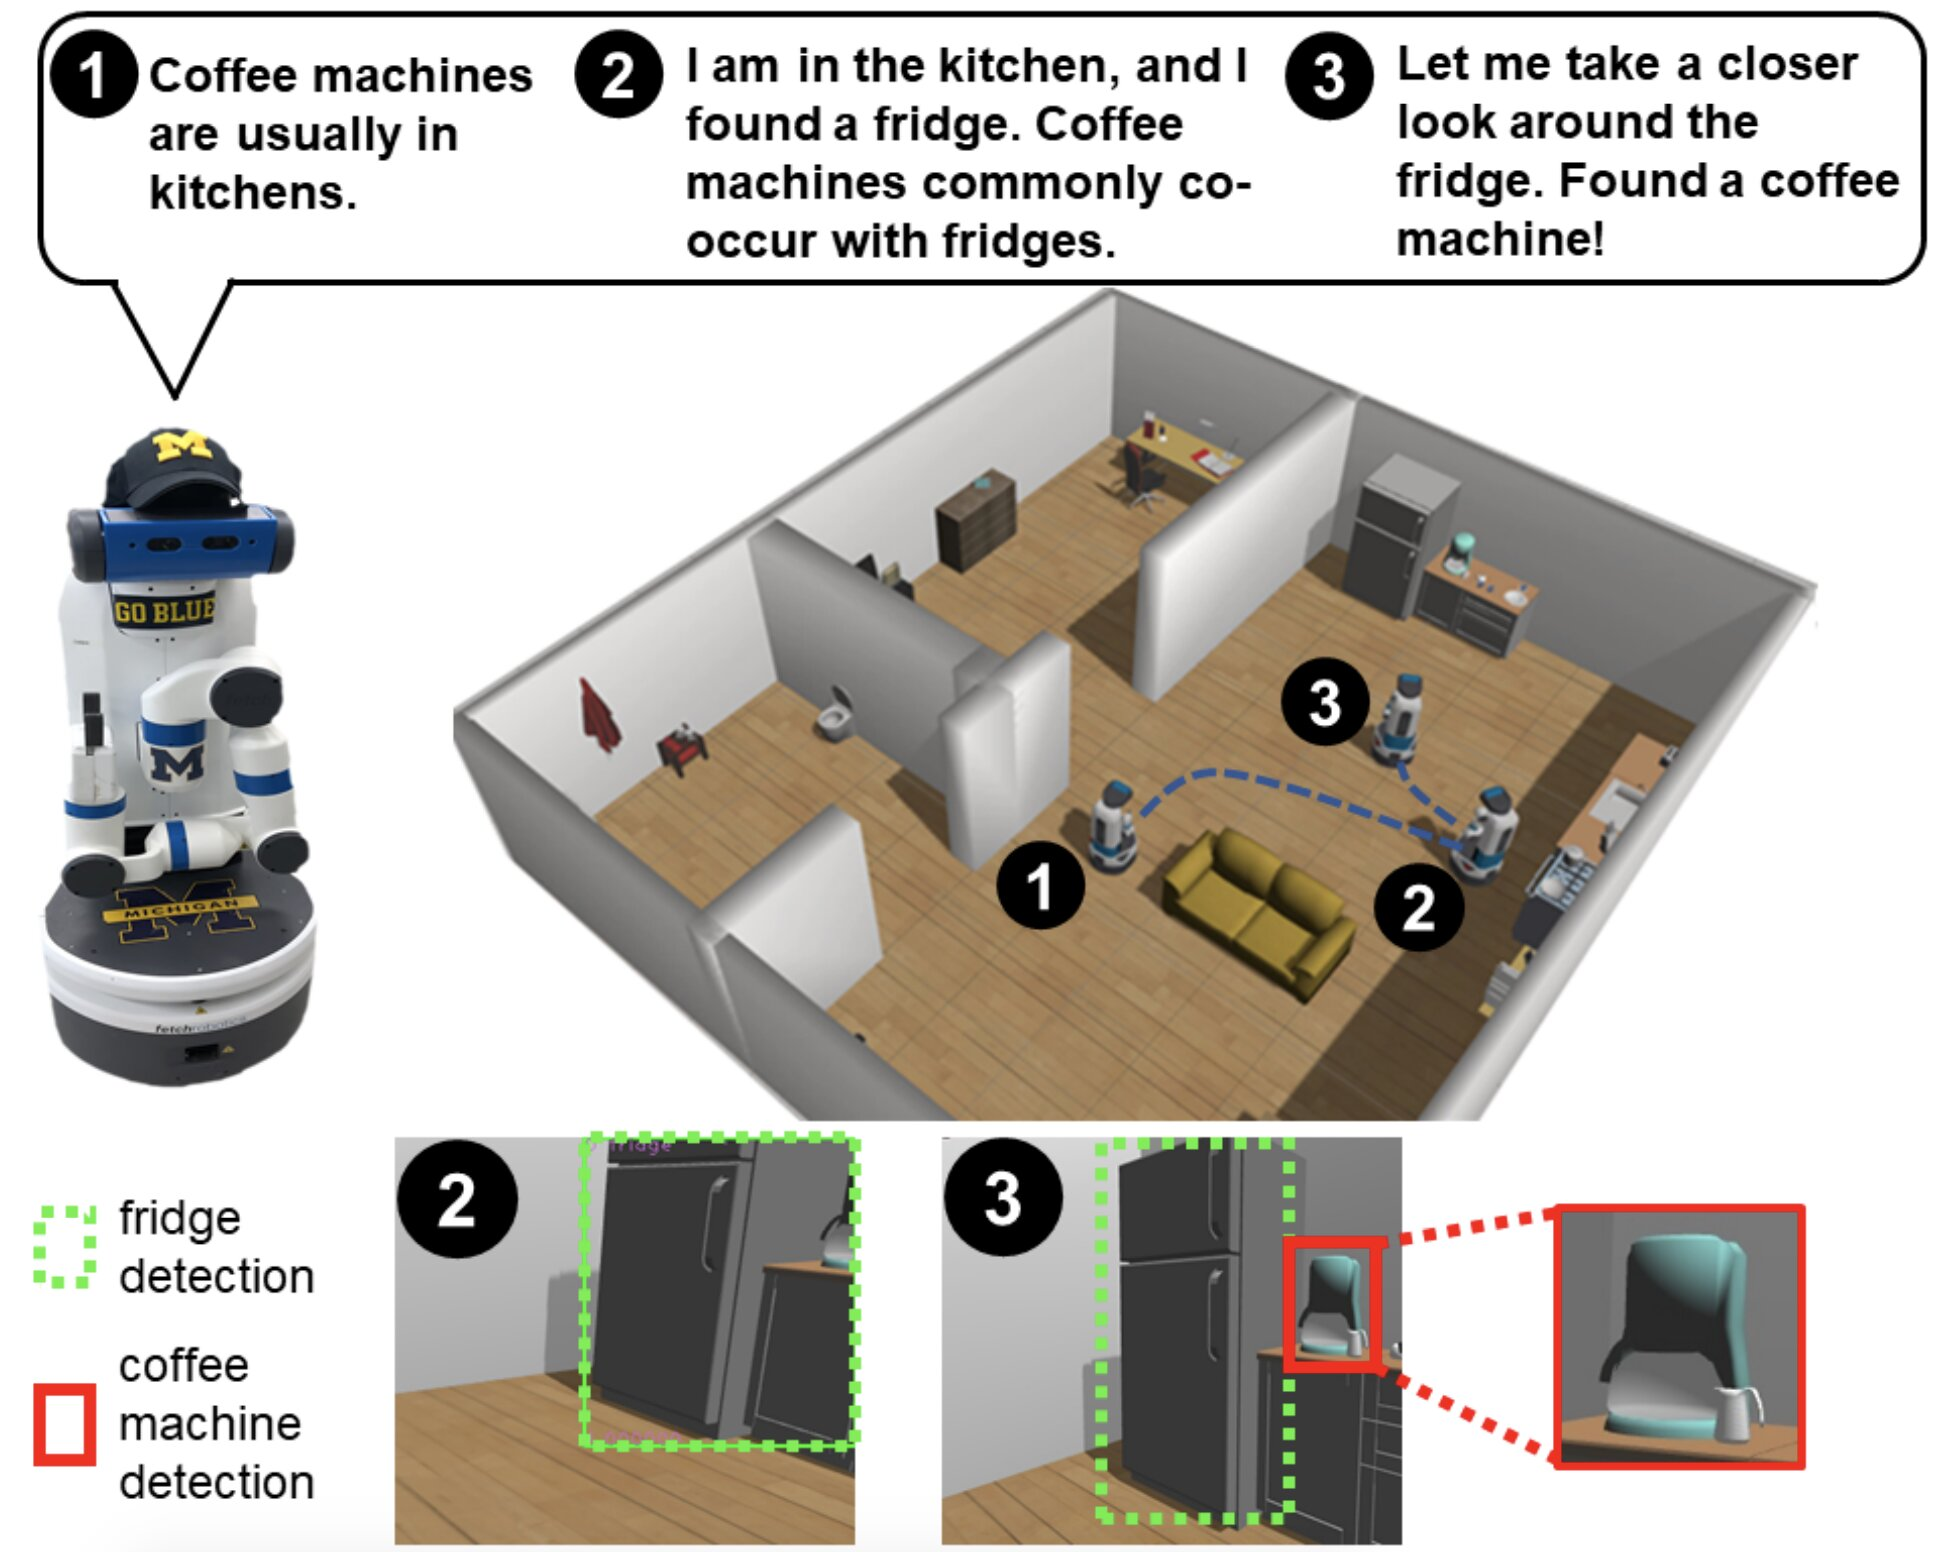 Model helps robots think more like humans when searching for objects